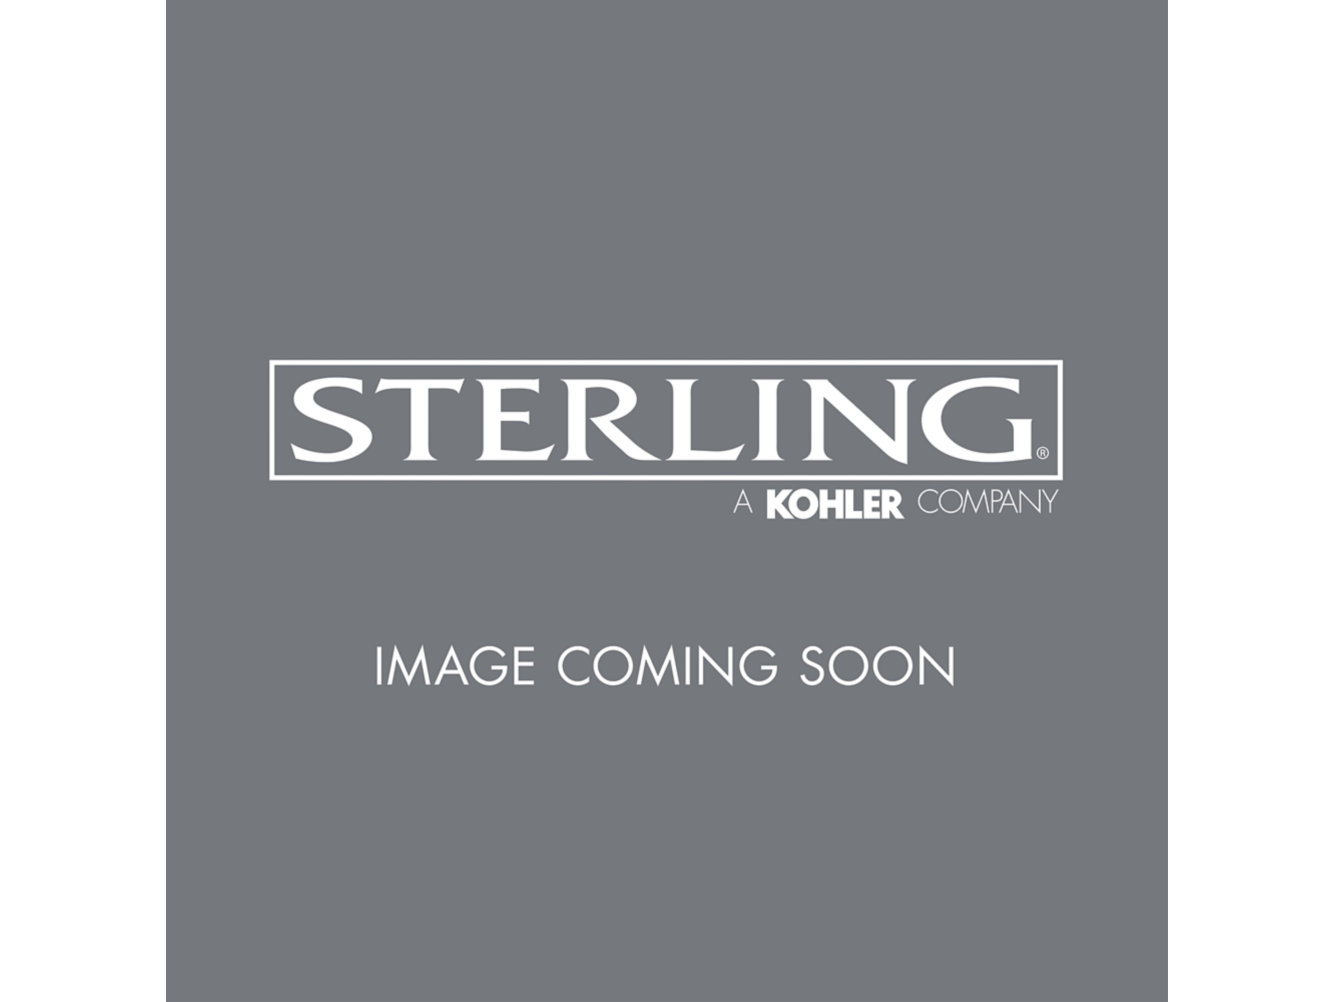 Middleton top mount double equal kitchen sink 33 x 22 x 8 14708 4 na sterling